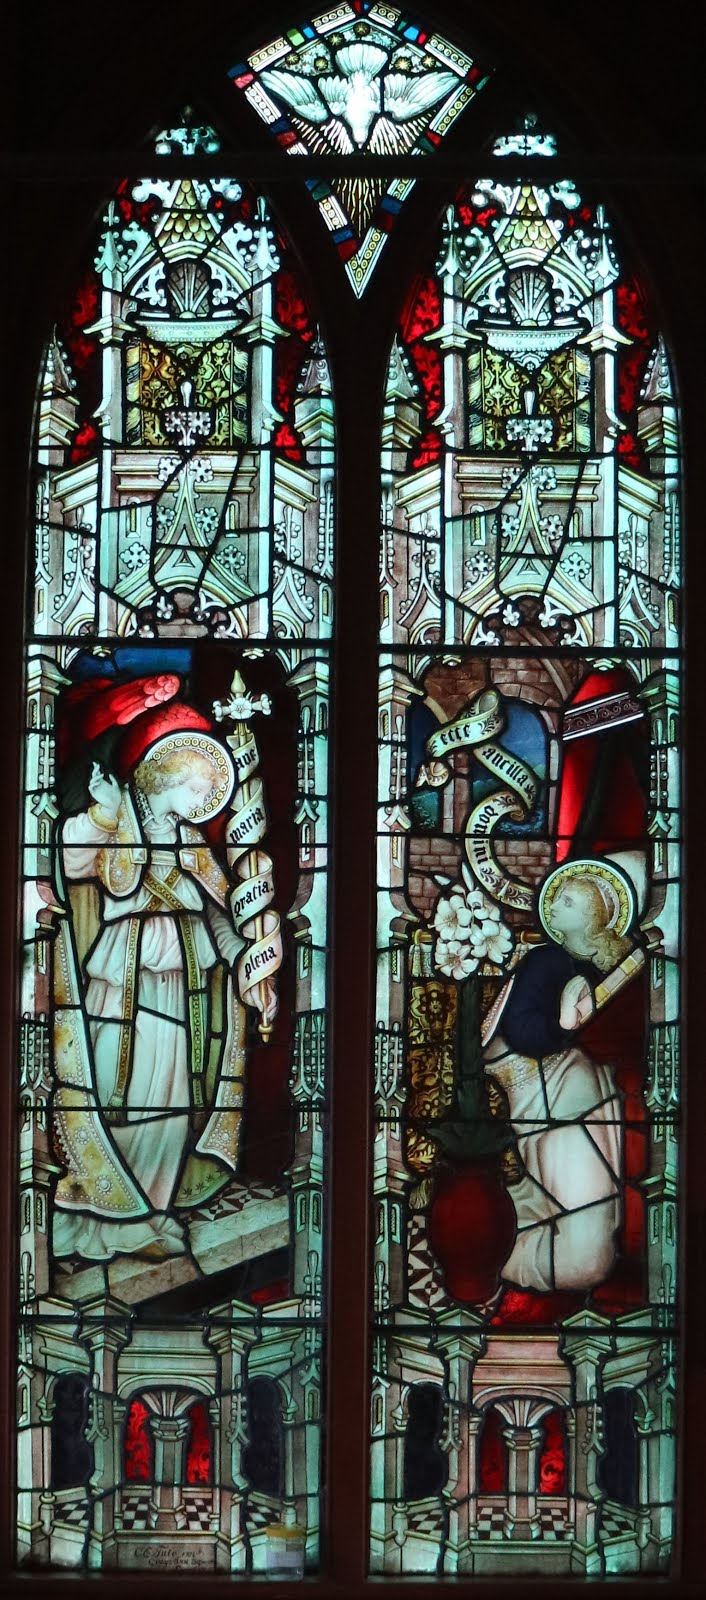 Stained Glass Windows of St Barnabas Church